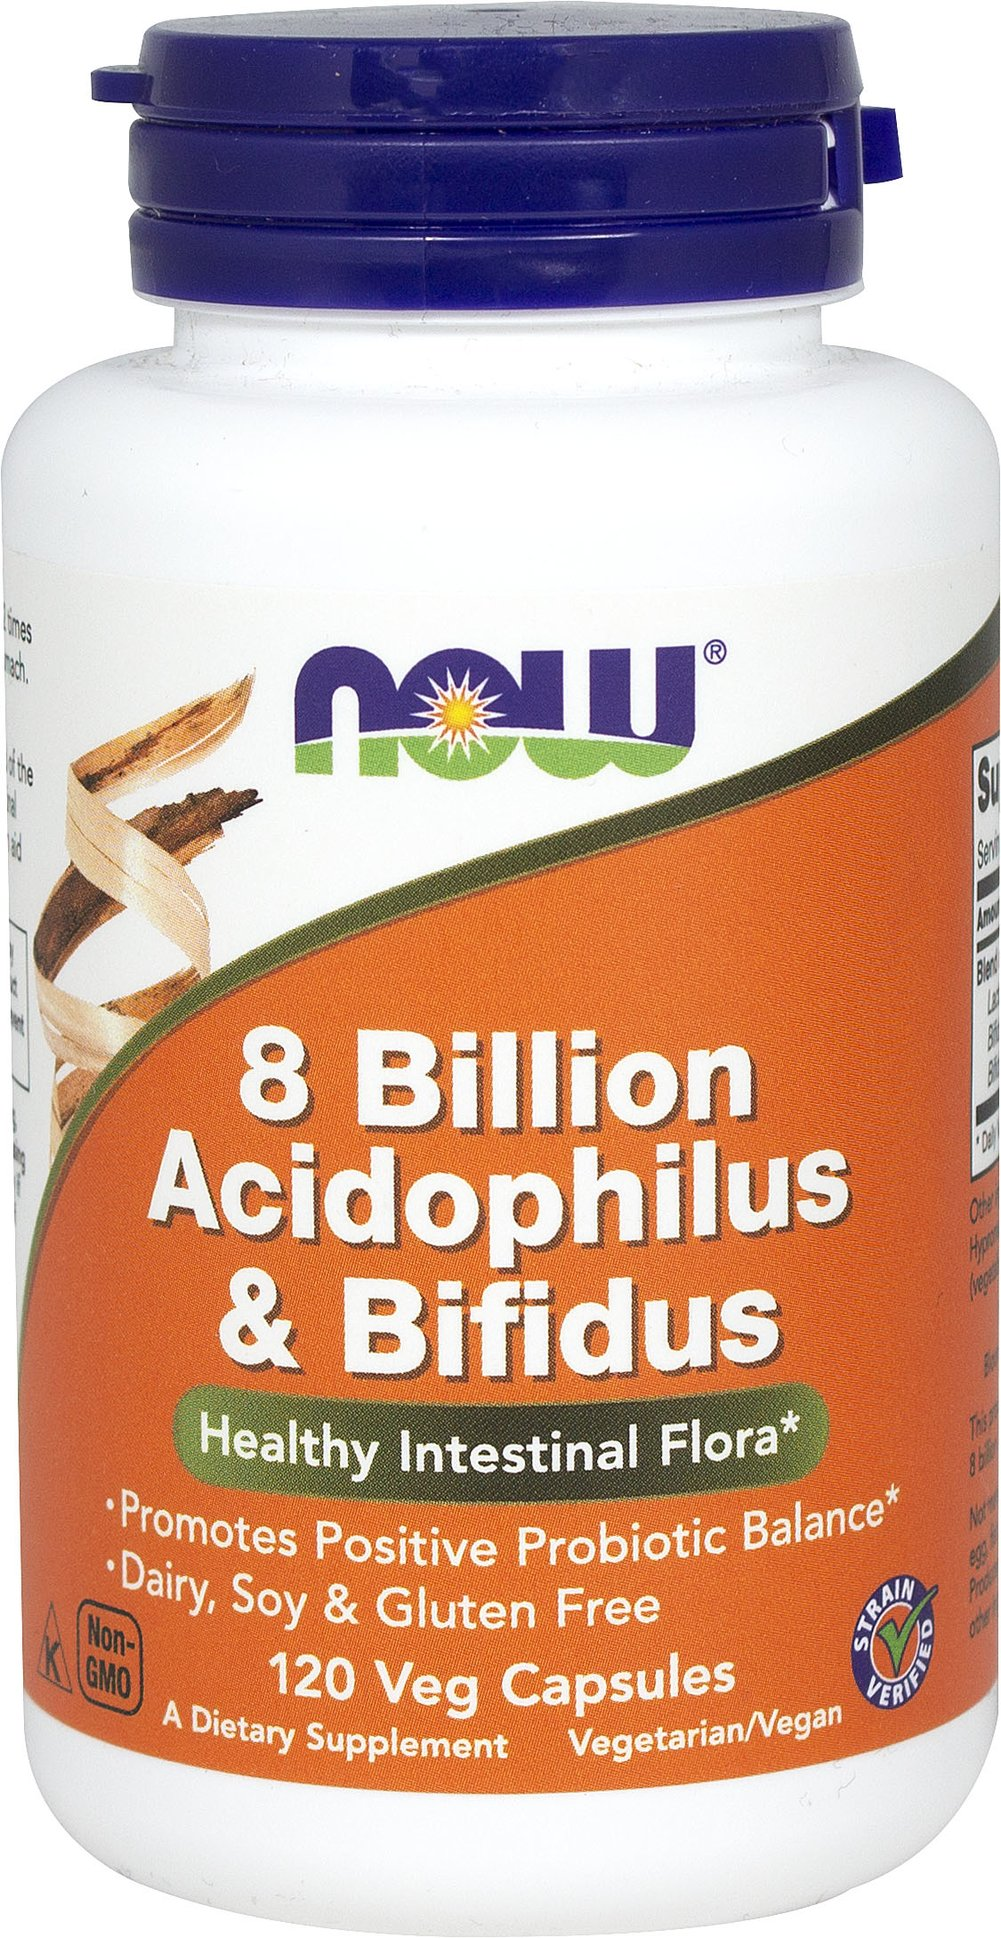 Acidophilus/Bifidus 8 Billion  120 Capsules  $13.99